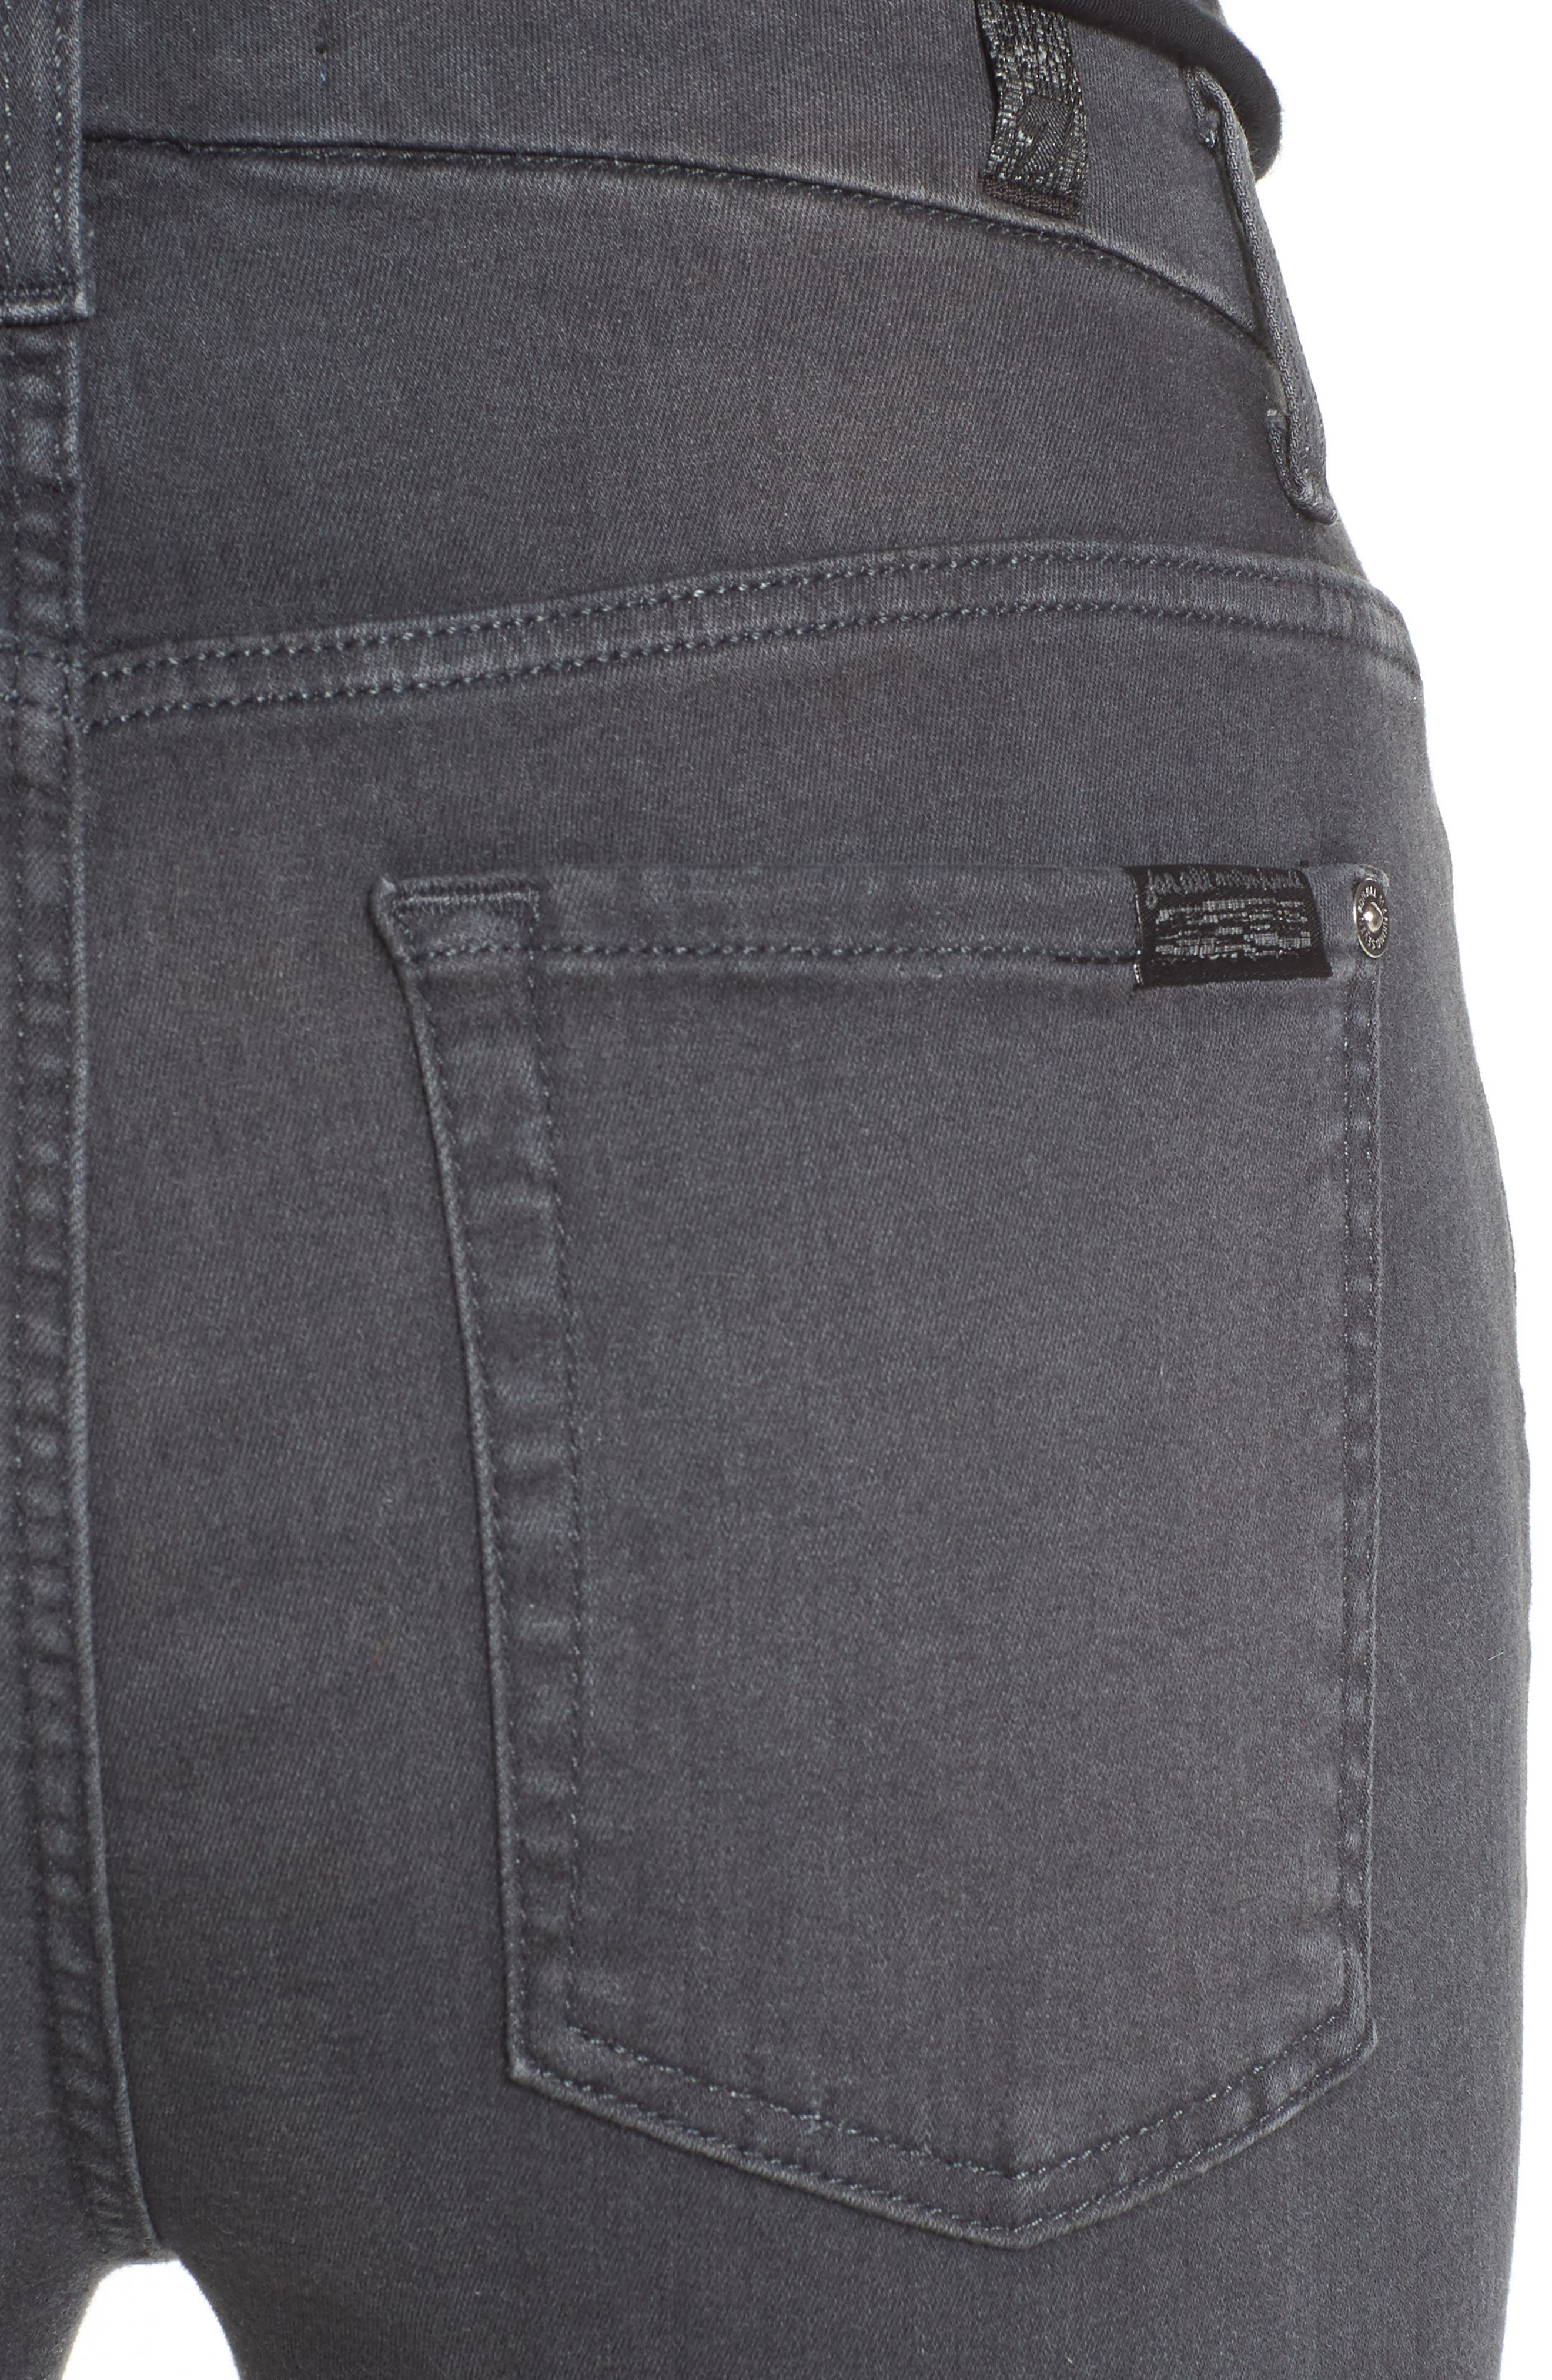 Alternate Image 4  - 7 For All Mankind® b(air) High Waist Skinny Jeans (Smoke)